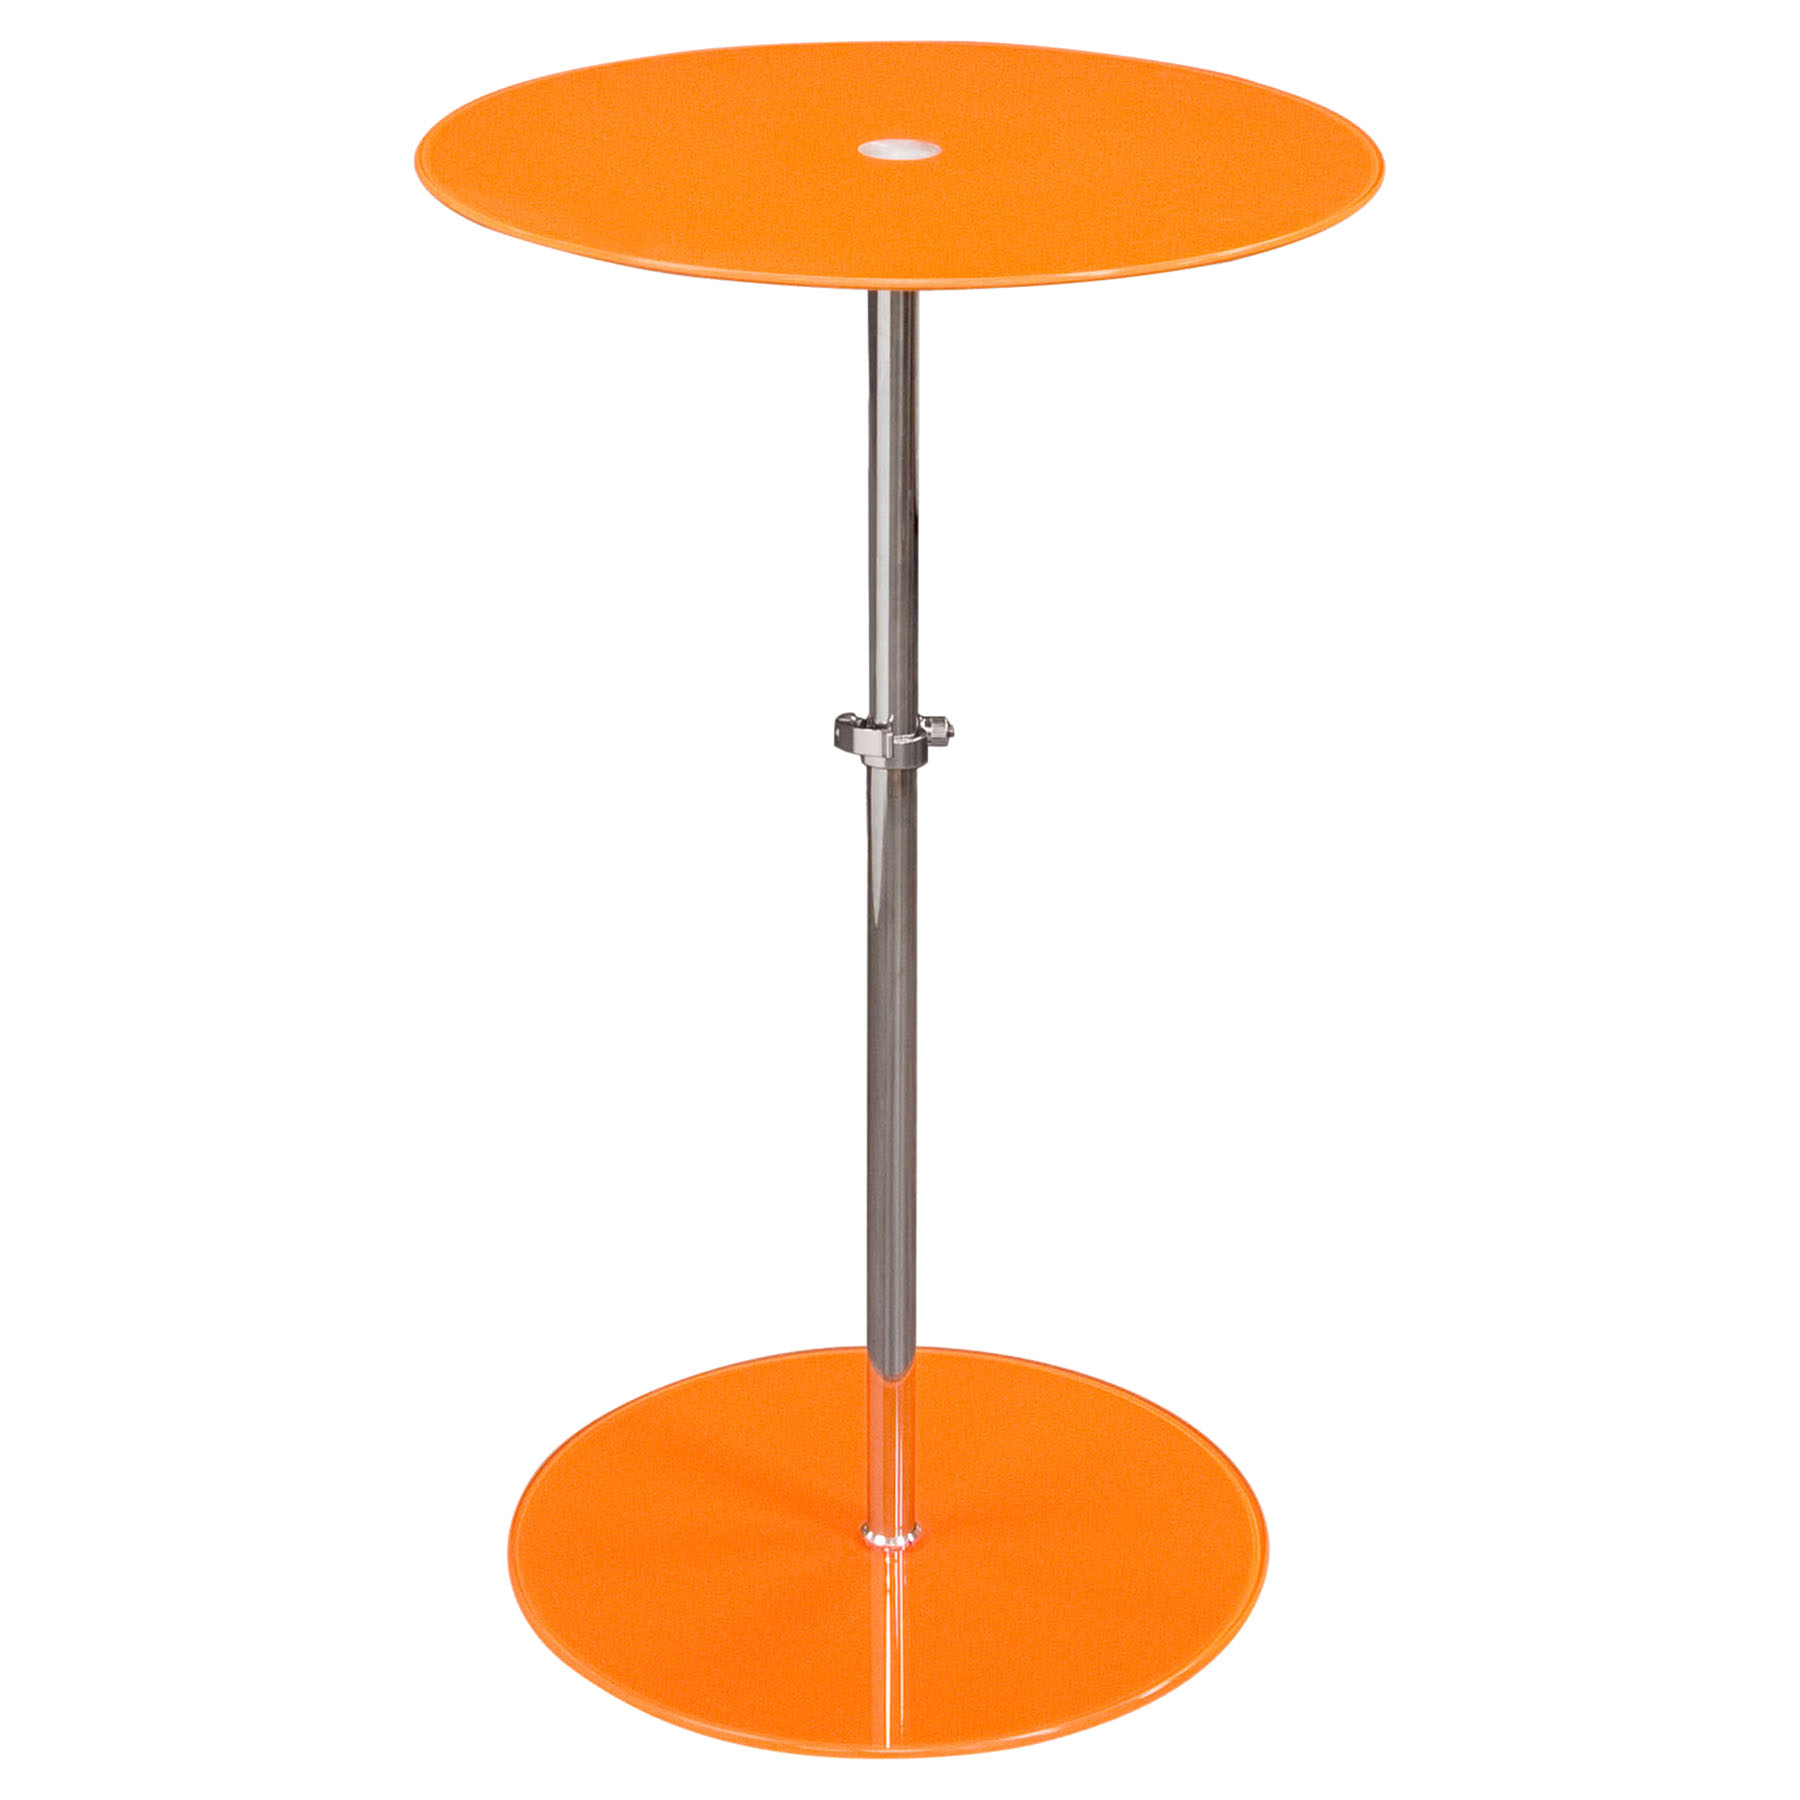 Orbit Glass Accent Table   Adjustable Height, Orange, Chrome